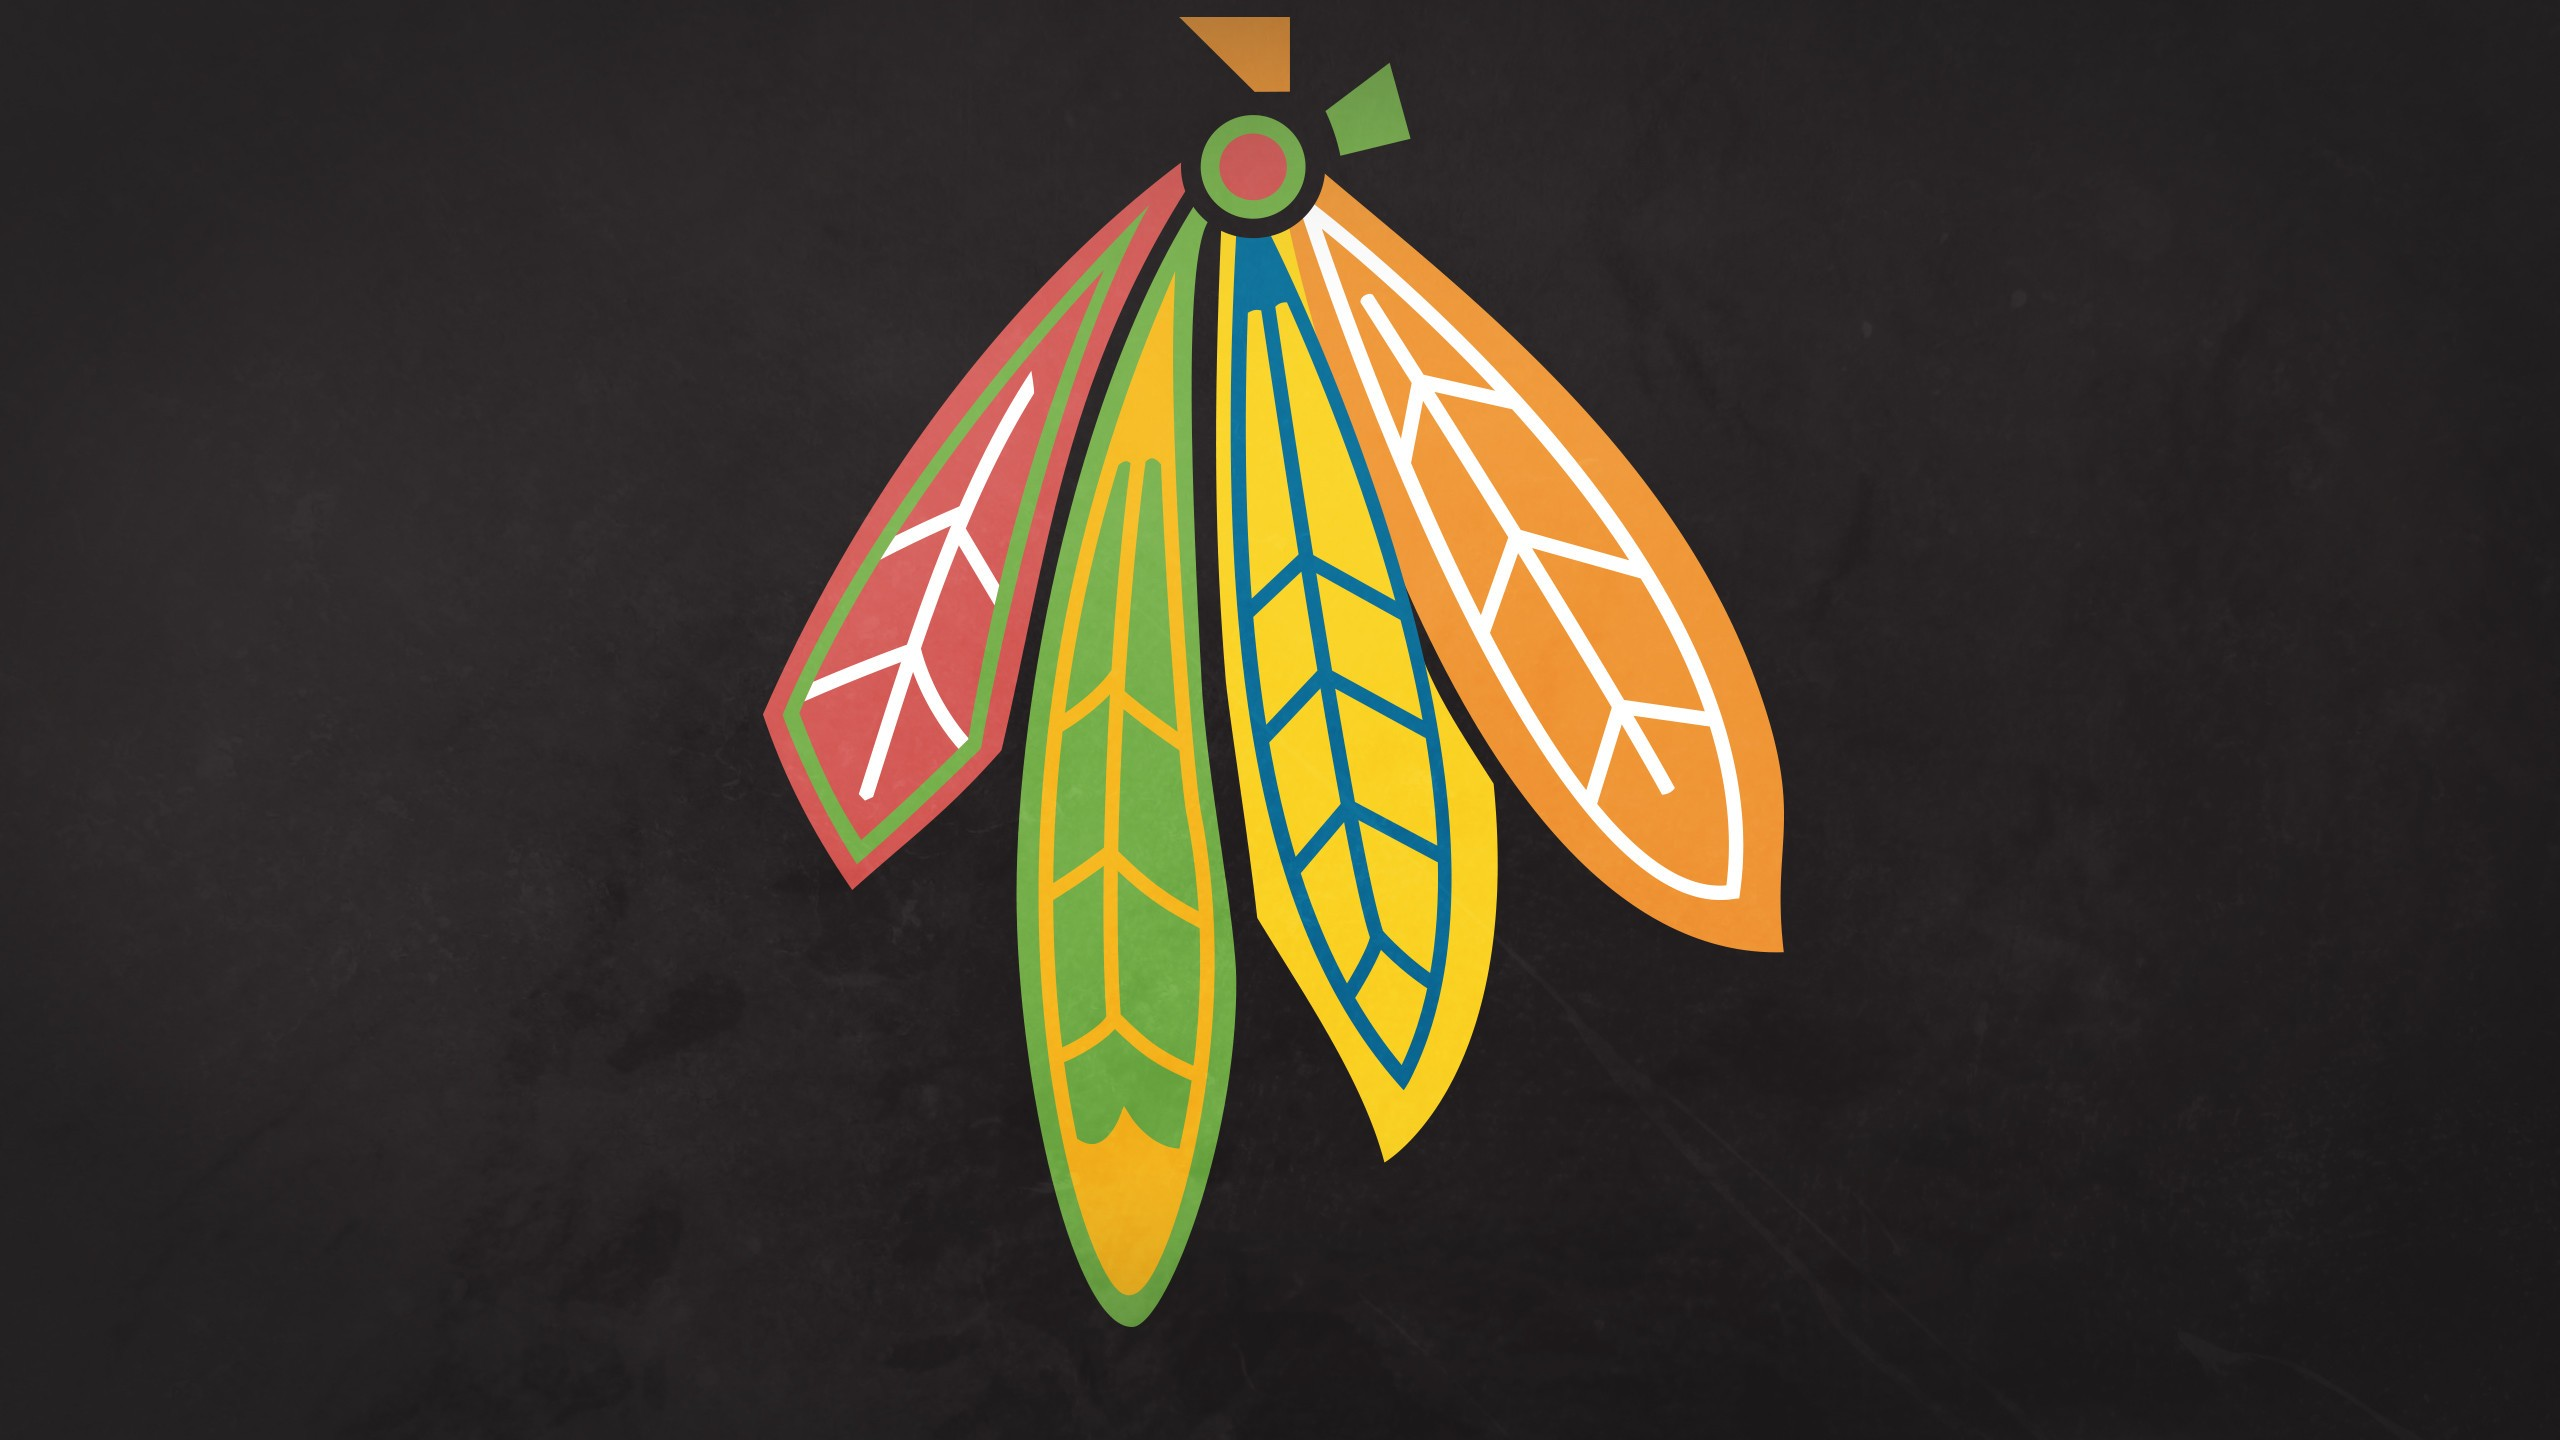 13 Chicago Blackhawks HD Wallpapers Backgrounds 2560x1440